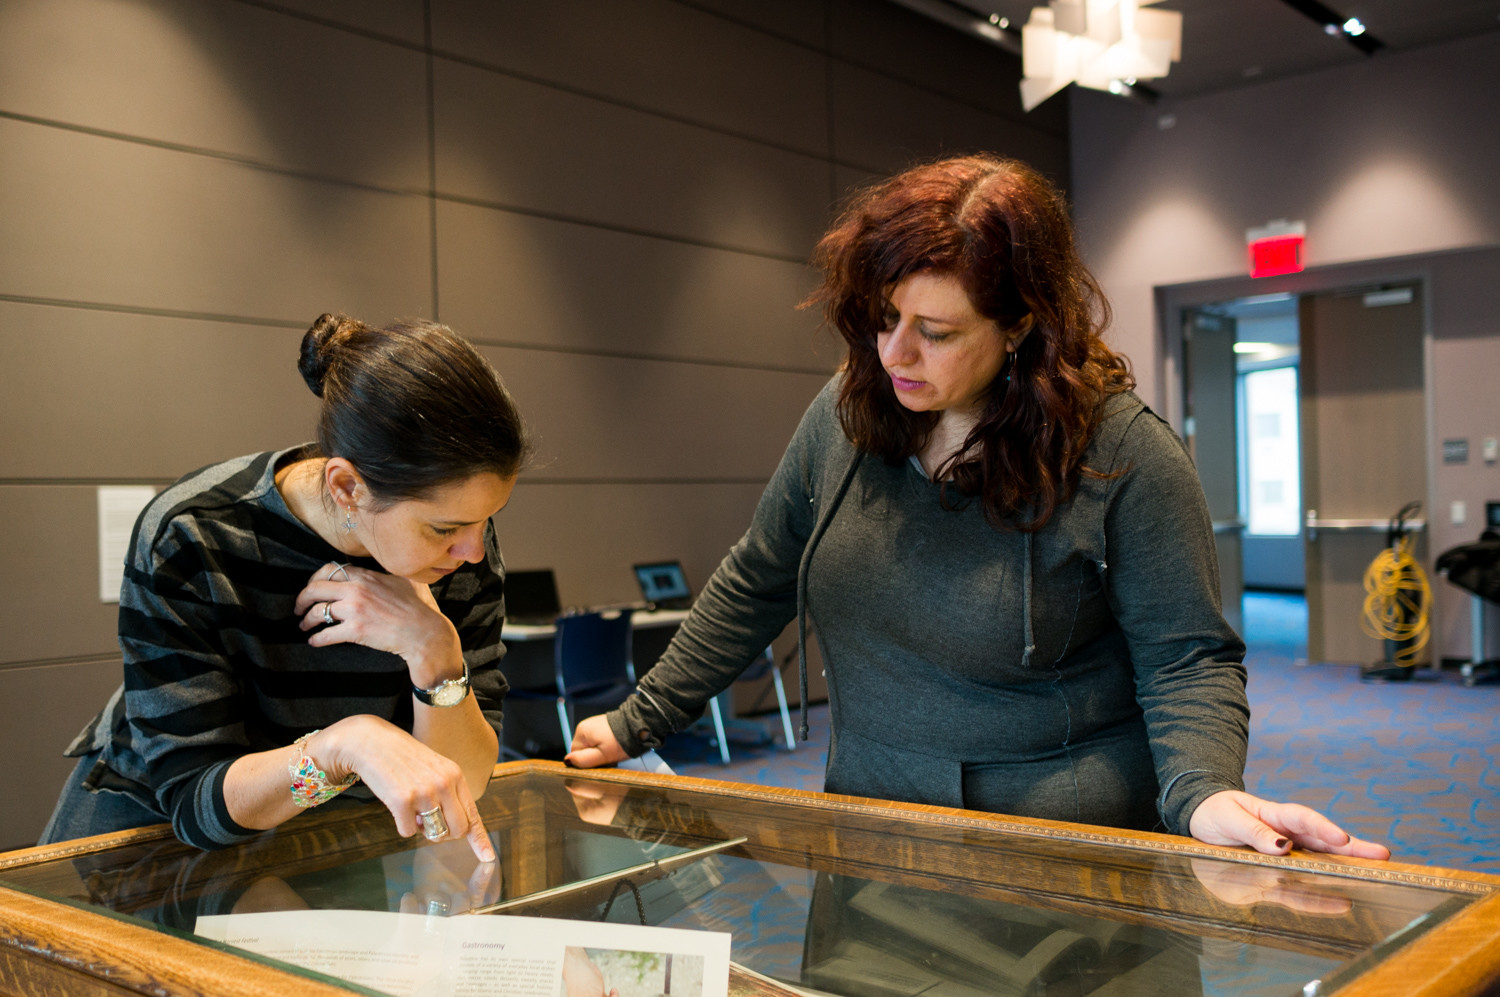 Amy Surak, left, the director of archives and special collections at Manhattan College, and Nada Odeh discuss how to display printed material in a glass case for the exhibition 'Bethlehem Beyond the Wall.' It is on display until Feb. 27.